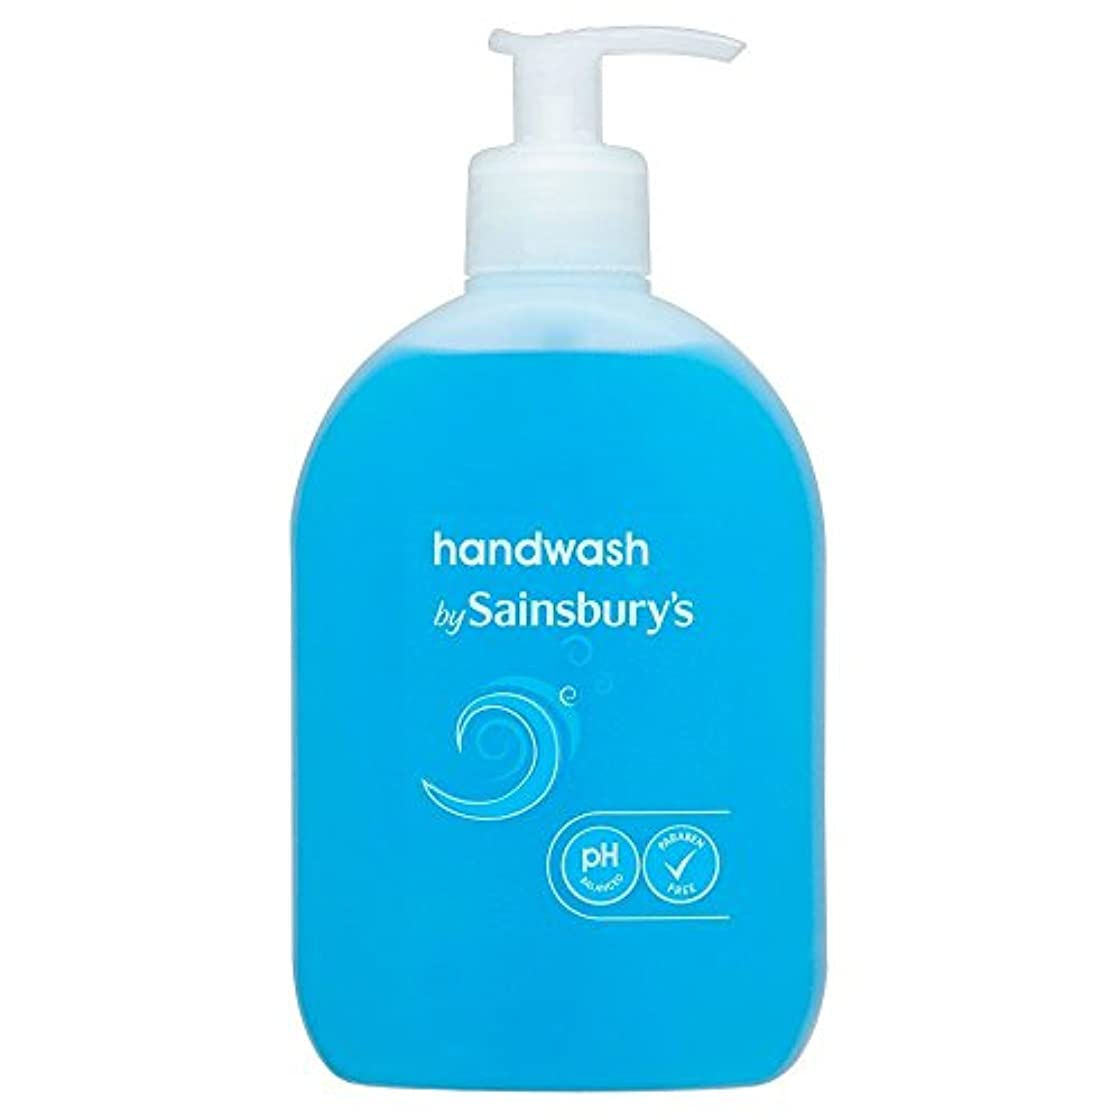 Sainsbury's Handwash, Blue 500ml (Pack of 6) - (Sainsbury's) 手洗い、青500ミリリットル (x6) [並行輸入品]